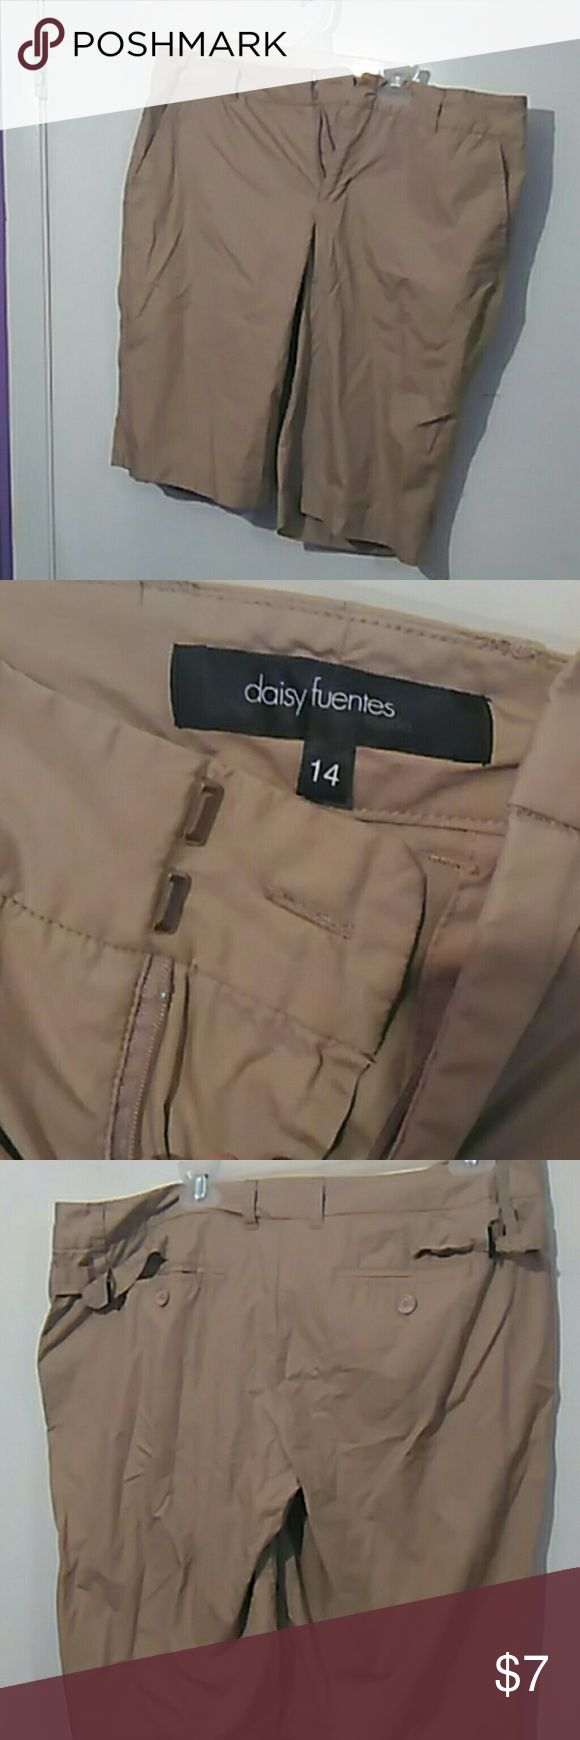 Khaki shorts! Khaki shorts size 14 great condition has side n back pockets. has one button and 2 snaps.  Waist is 17 inches 21 inches long. Prewashed. Ships same or next day excluding Saturdays. I don't trade. I accept reasonable offers and have bundle discounts. Thank you for shopping my closet. Any questions ask. Daisy Fuentes Shorts